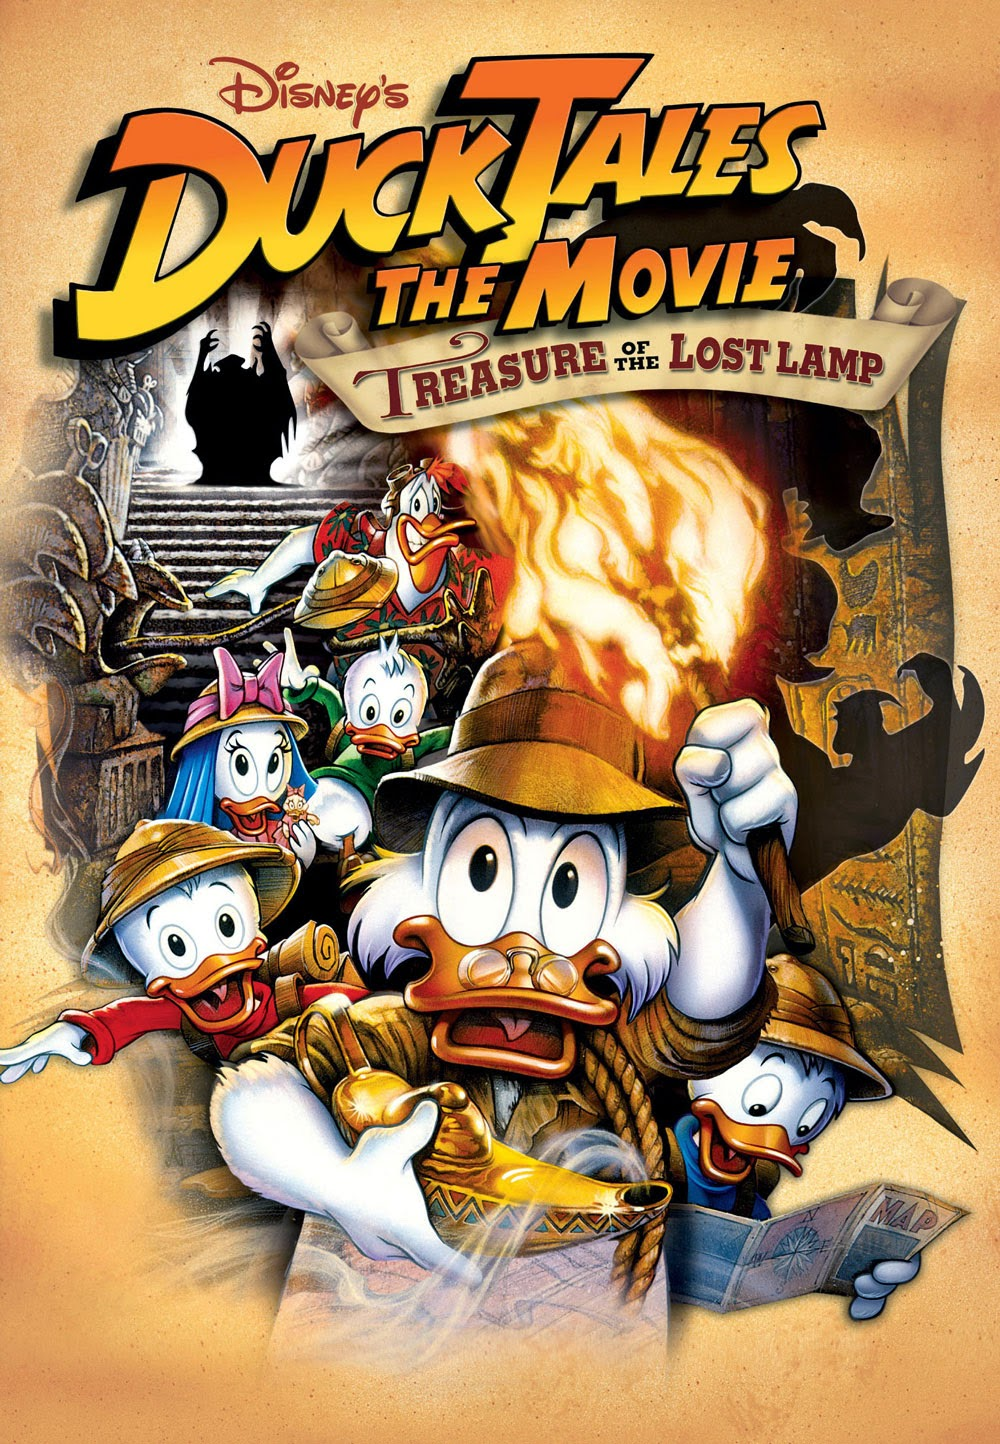 DuckTalse: The Movie - Treasure of The Lost Lamp